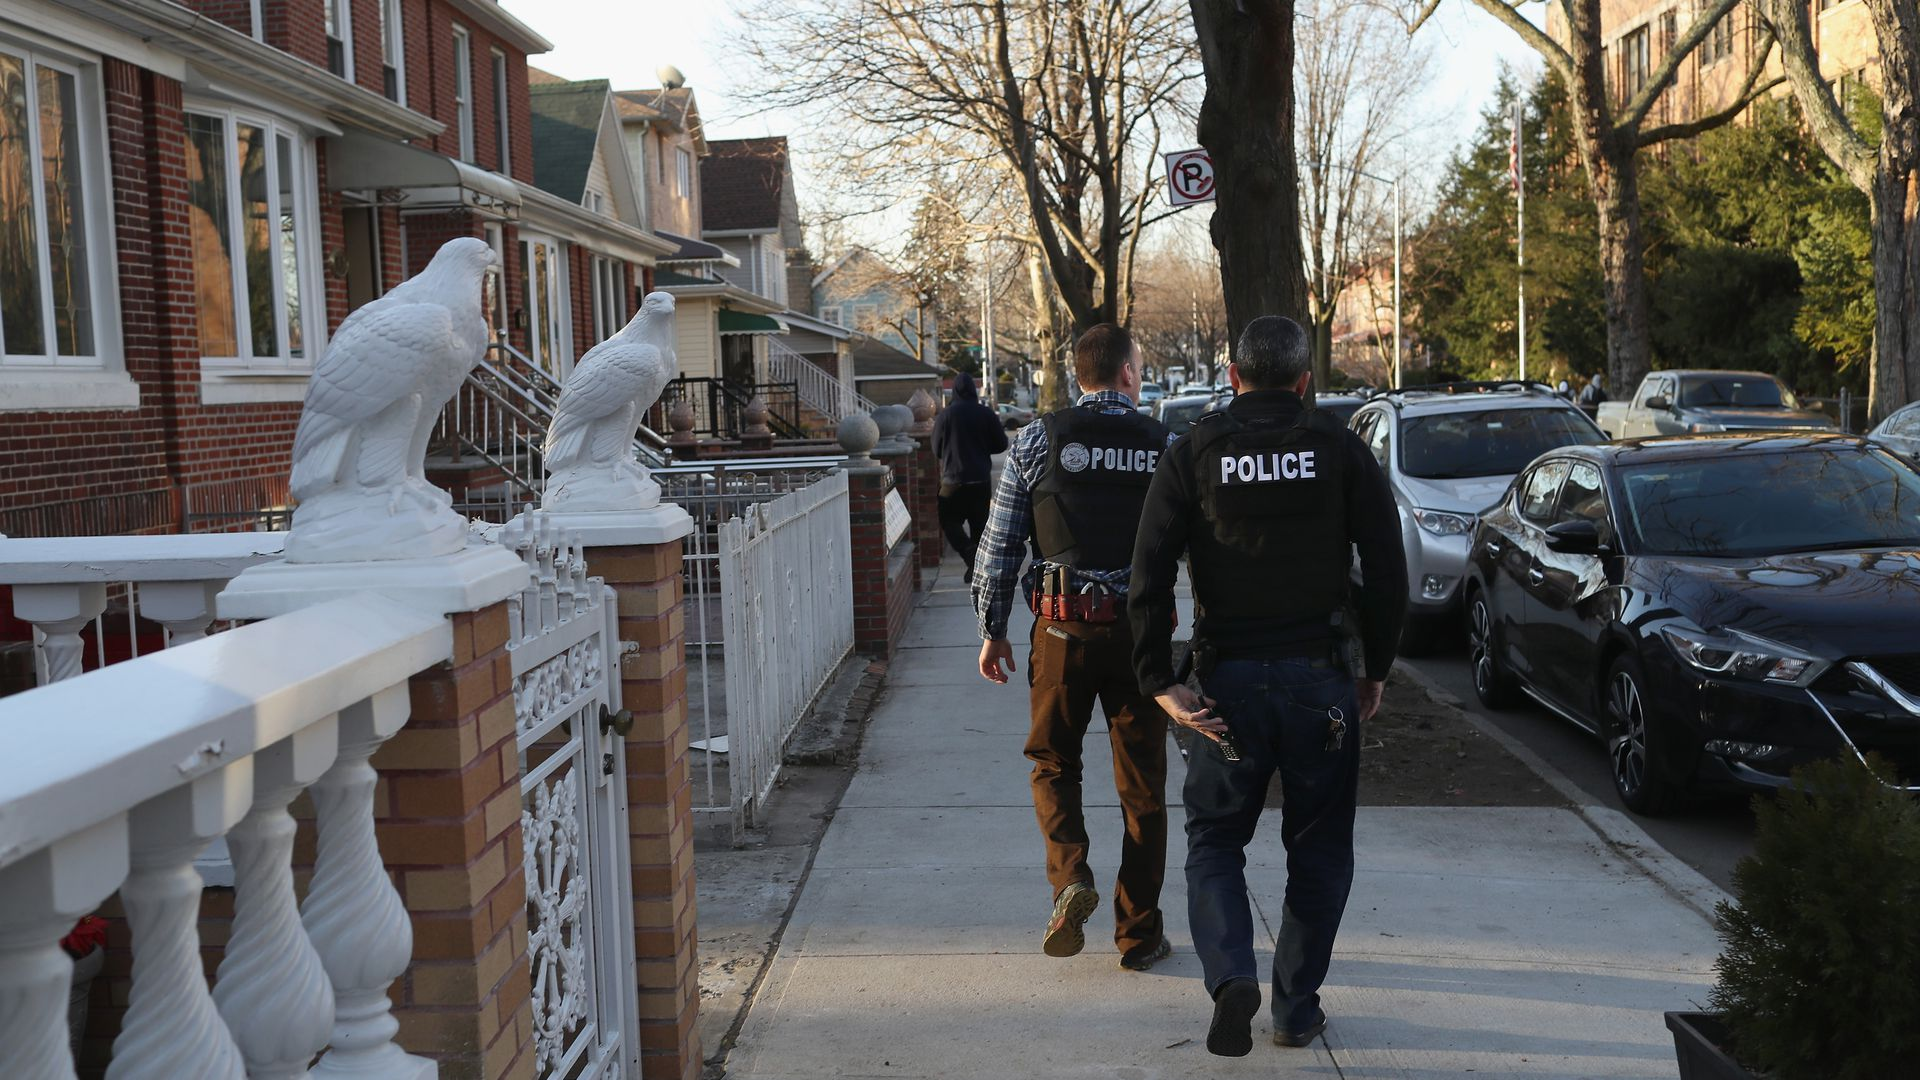 Two police officers walk through a neighborhood